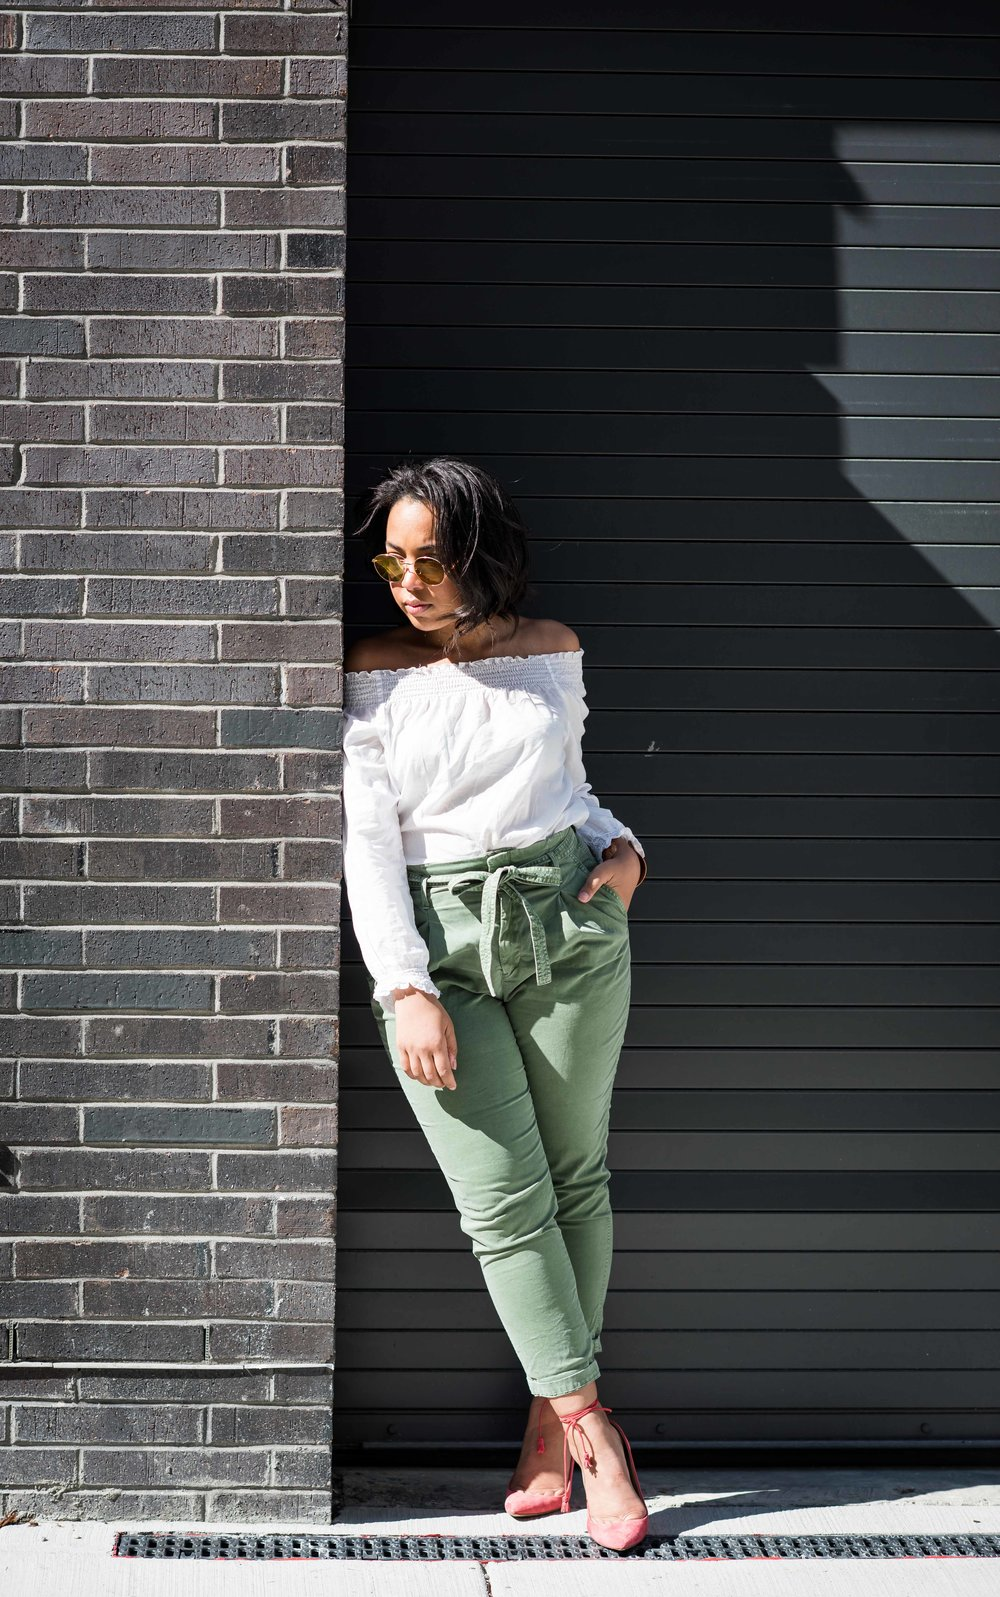 gap-paper-bag-waist-chinos-off-the-shoulder-blouse-jcrew-tassle-pumps-round-sunglasses-urban-outfitters-spring-fashion-5.JPG